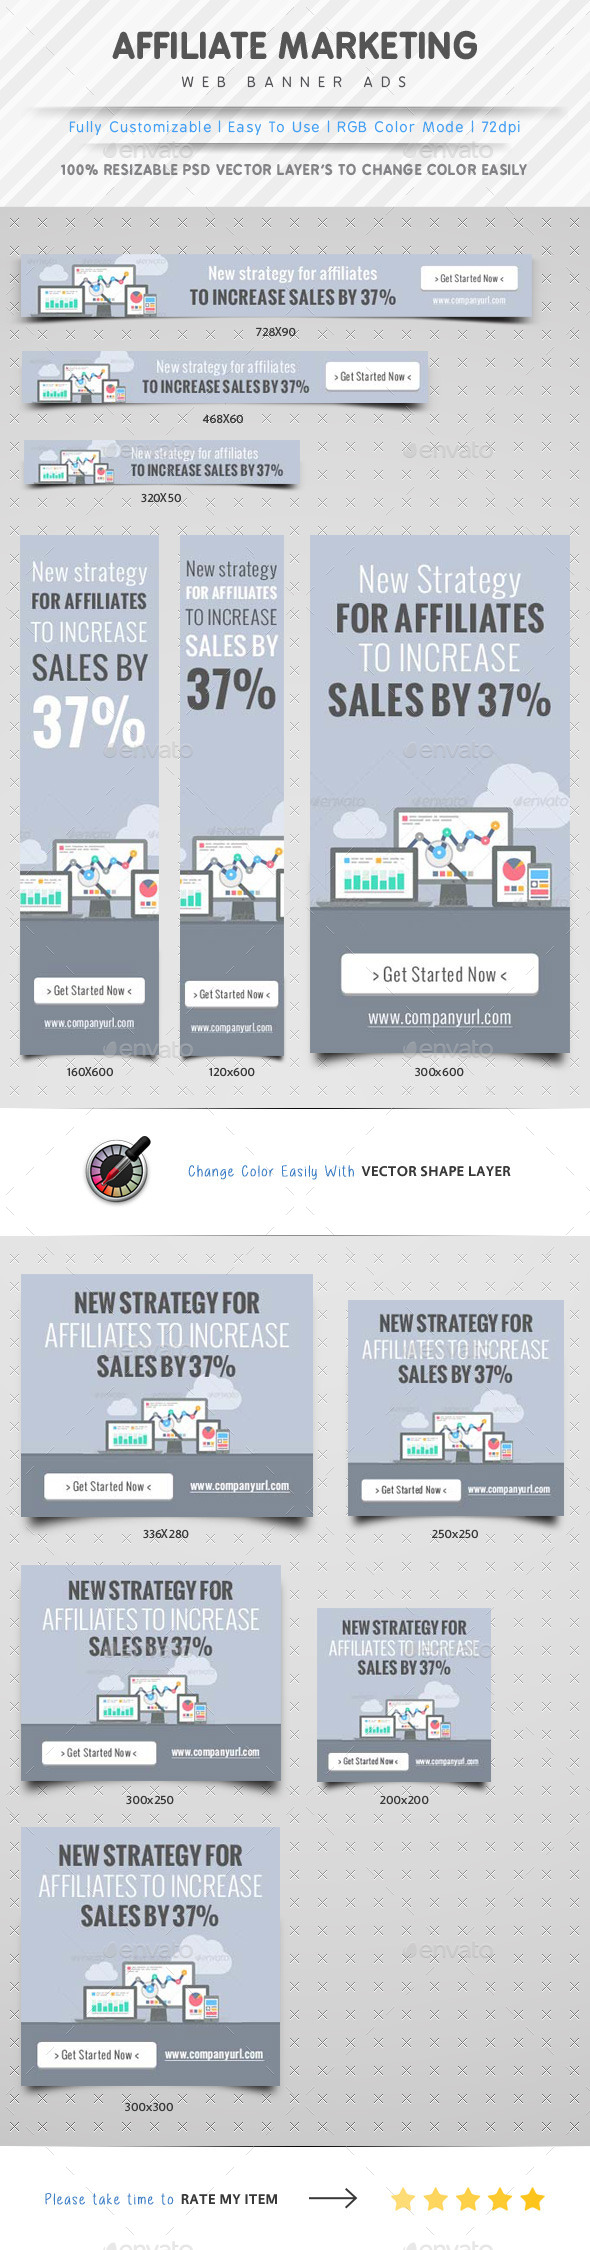 GraphicRiver Affiliate Marketing Web Banner Ads 10402987